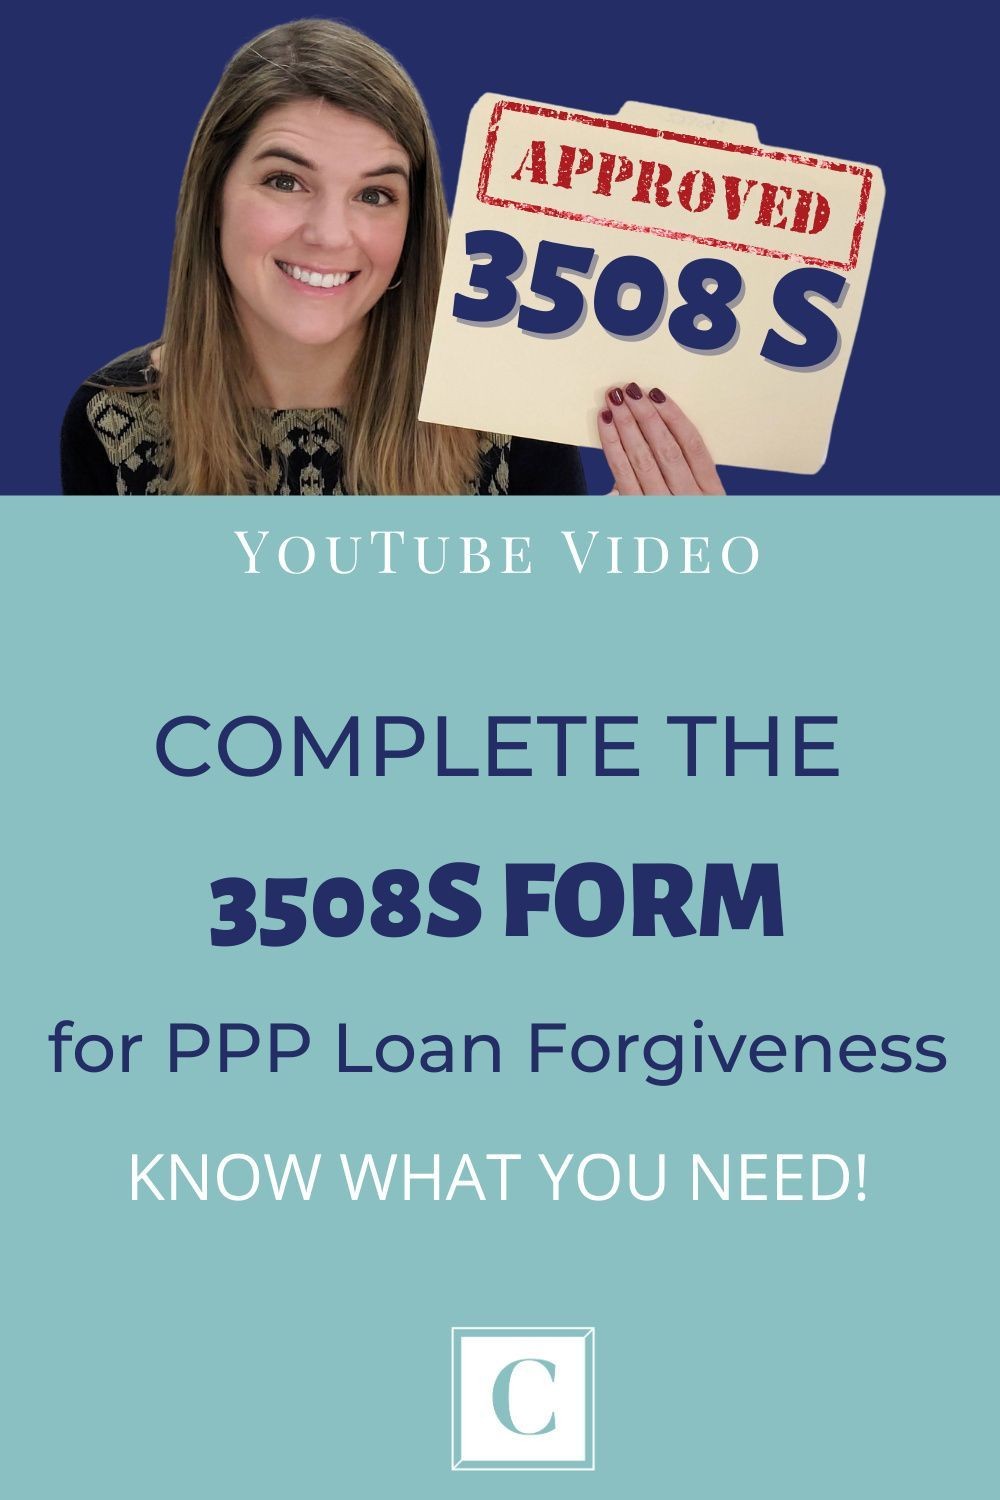 Pin On Ppp Loan Information